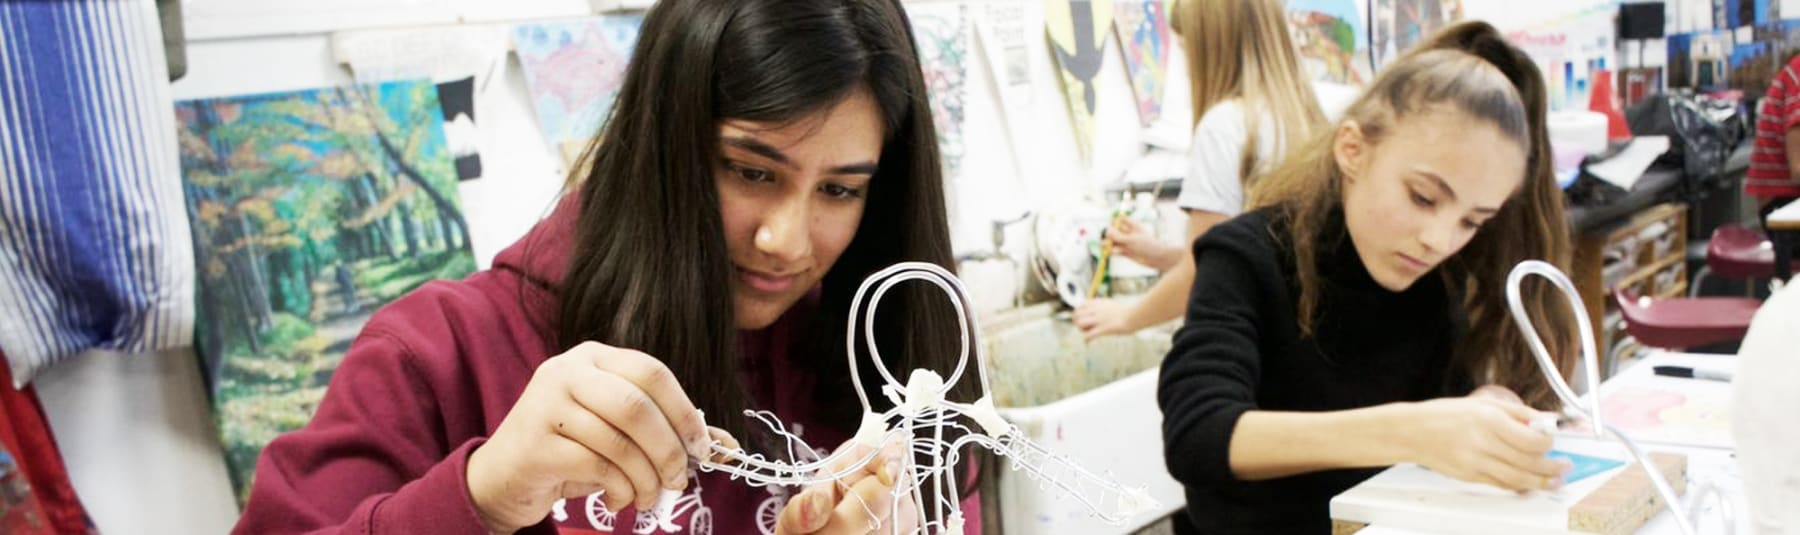 Students working in a classroom making wire figure sculpture.